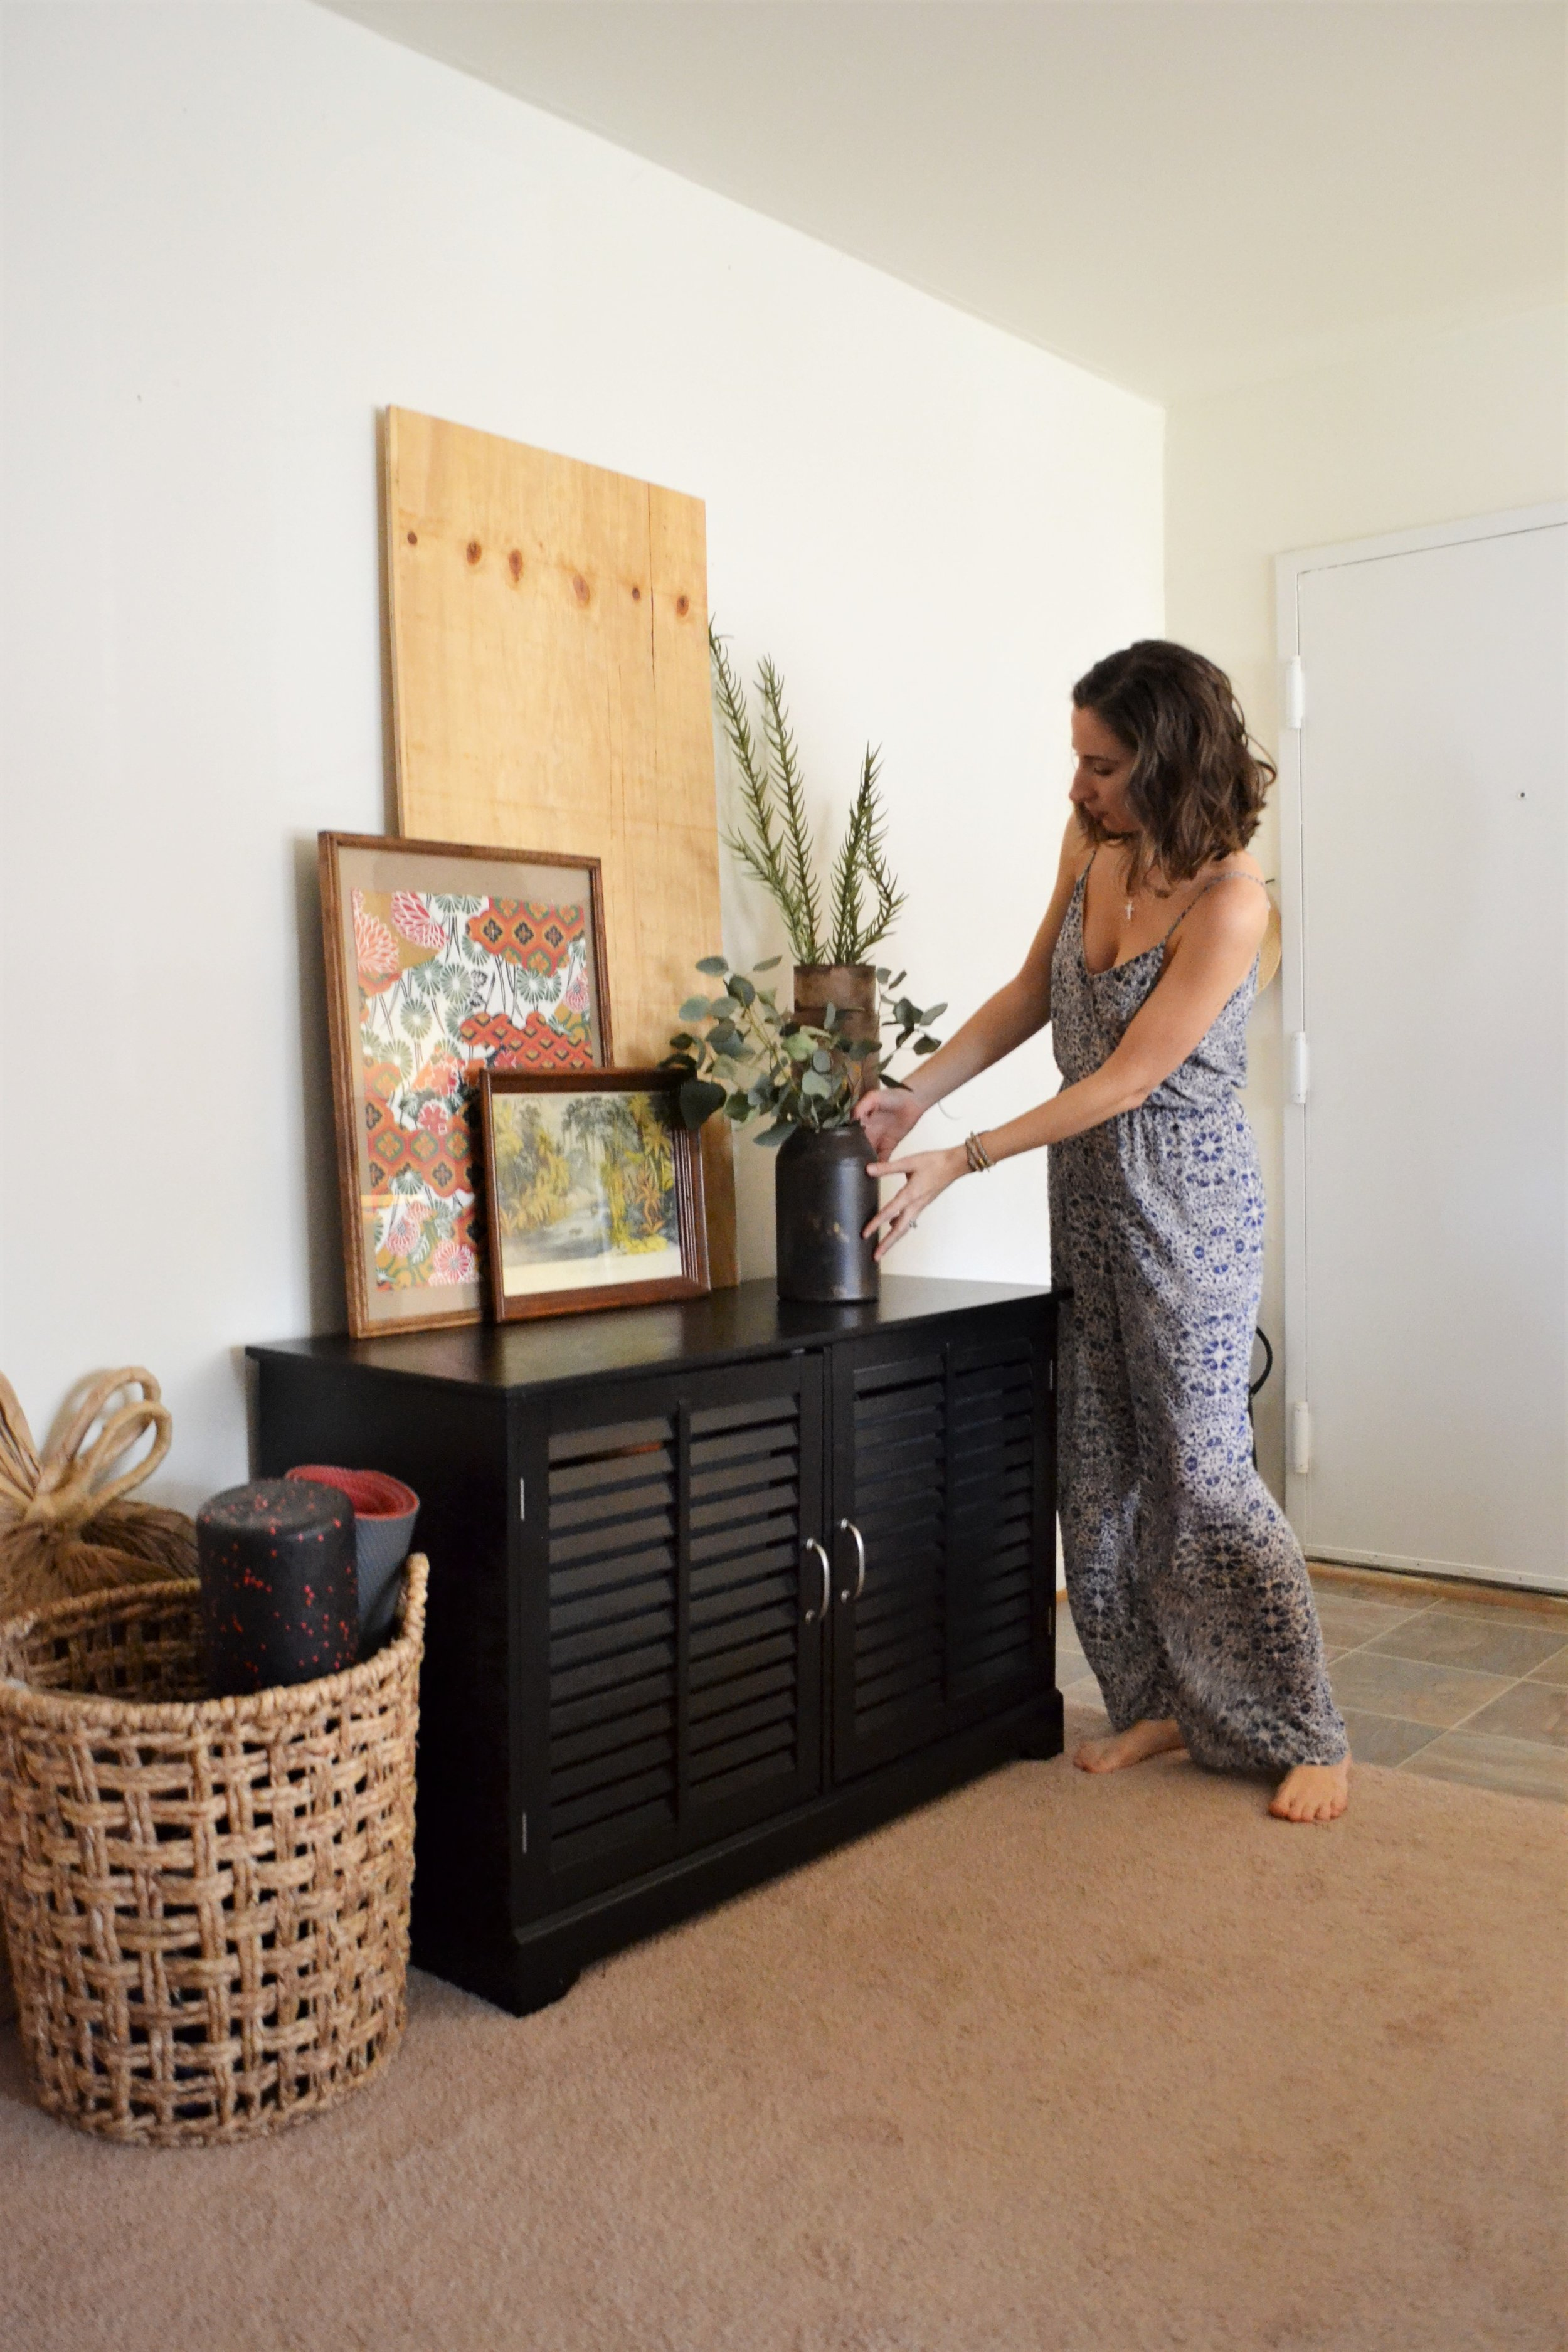 1 Entry Styled 3 Ways - Making Room for Peace 06.JPG